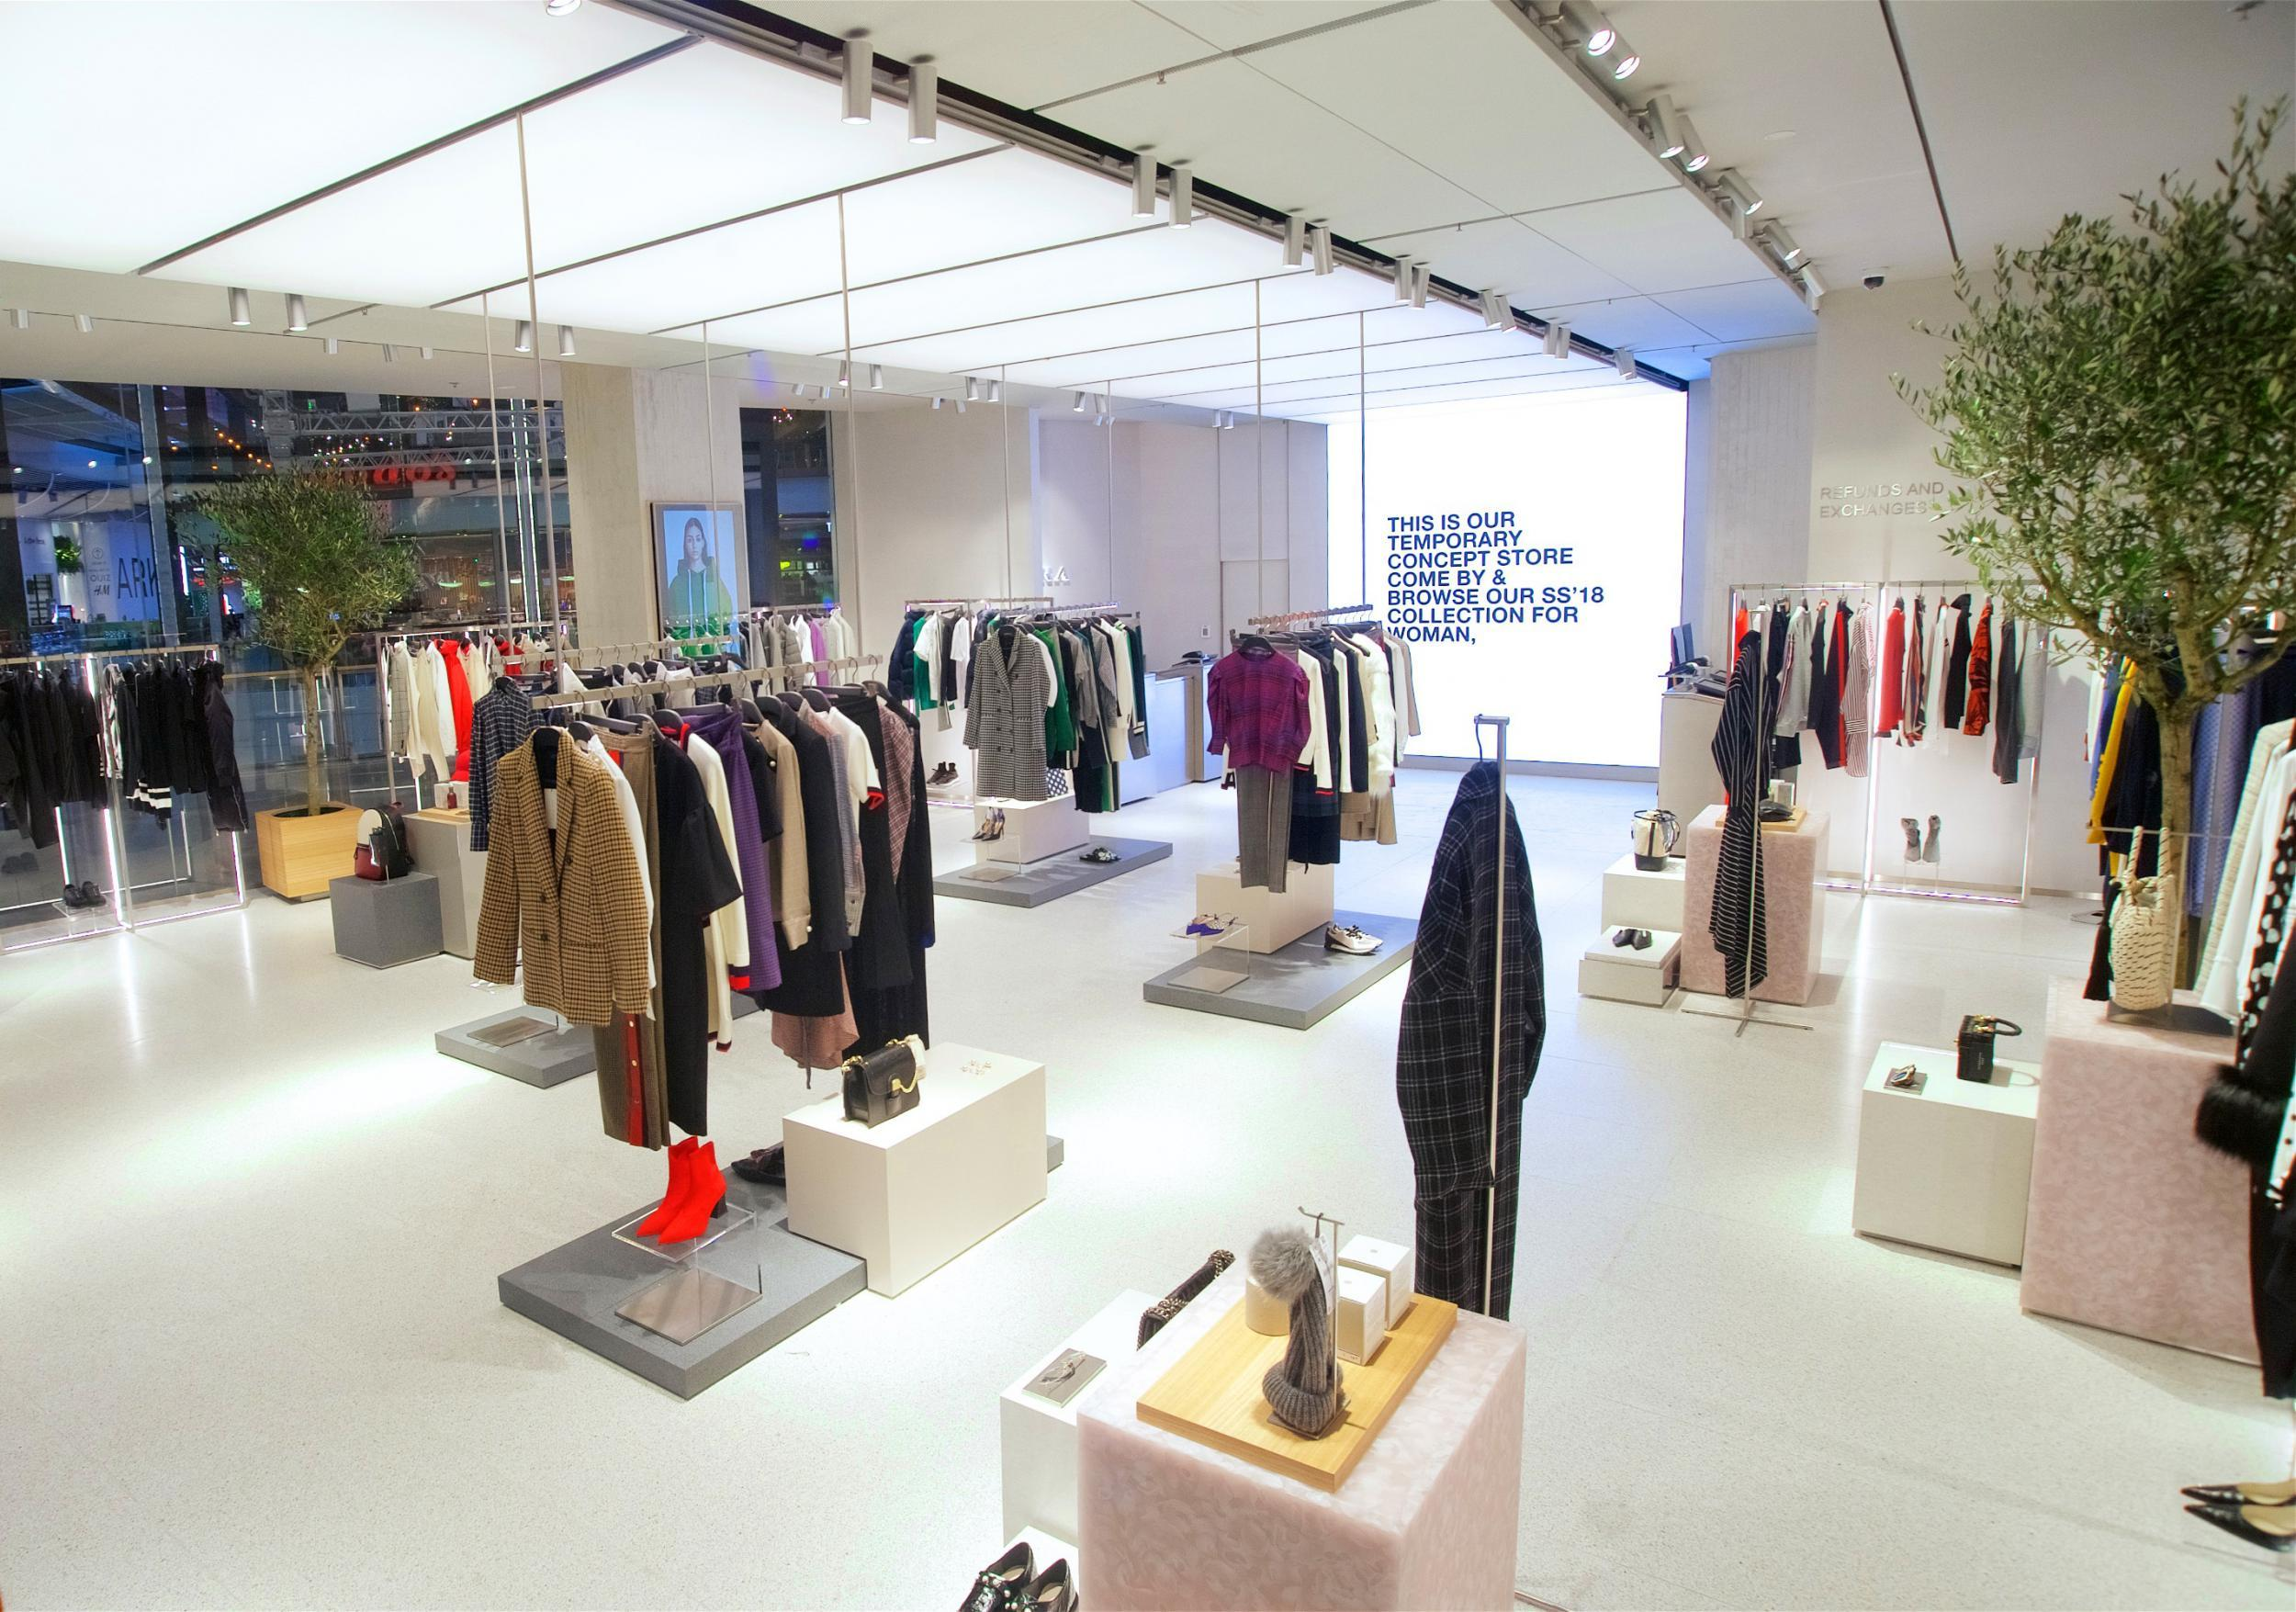 Zara unveils new click-and-collect store